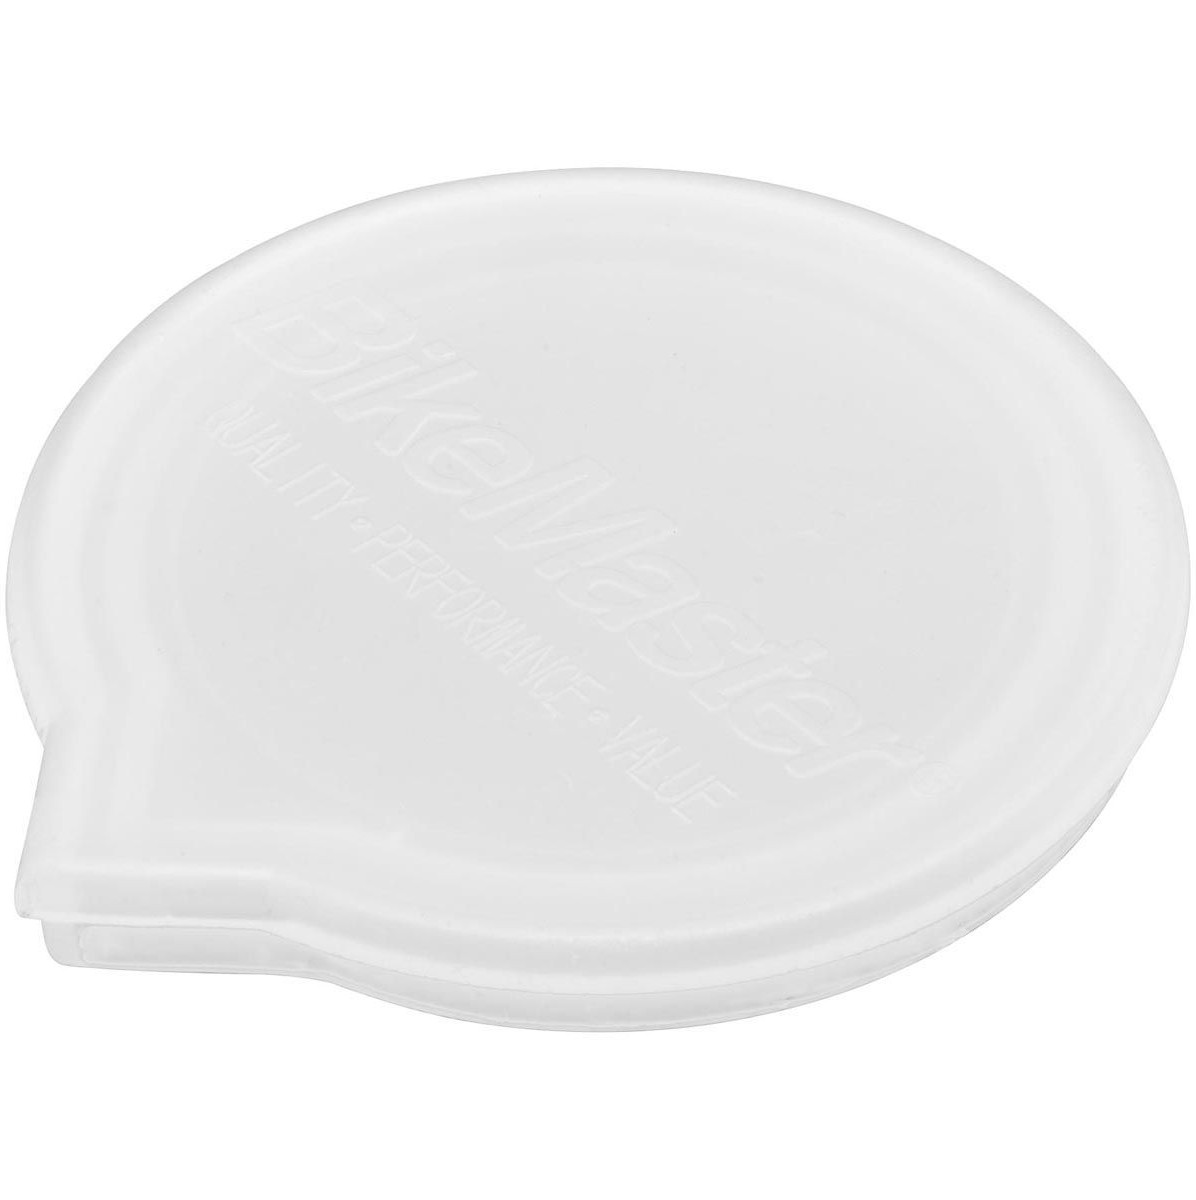 BikeMaster Measuring Cup Lid Replacement  0000-bikemaster-measuring-cup-lid-replacement-mcss.jpg